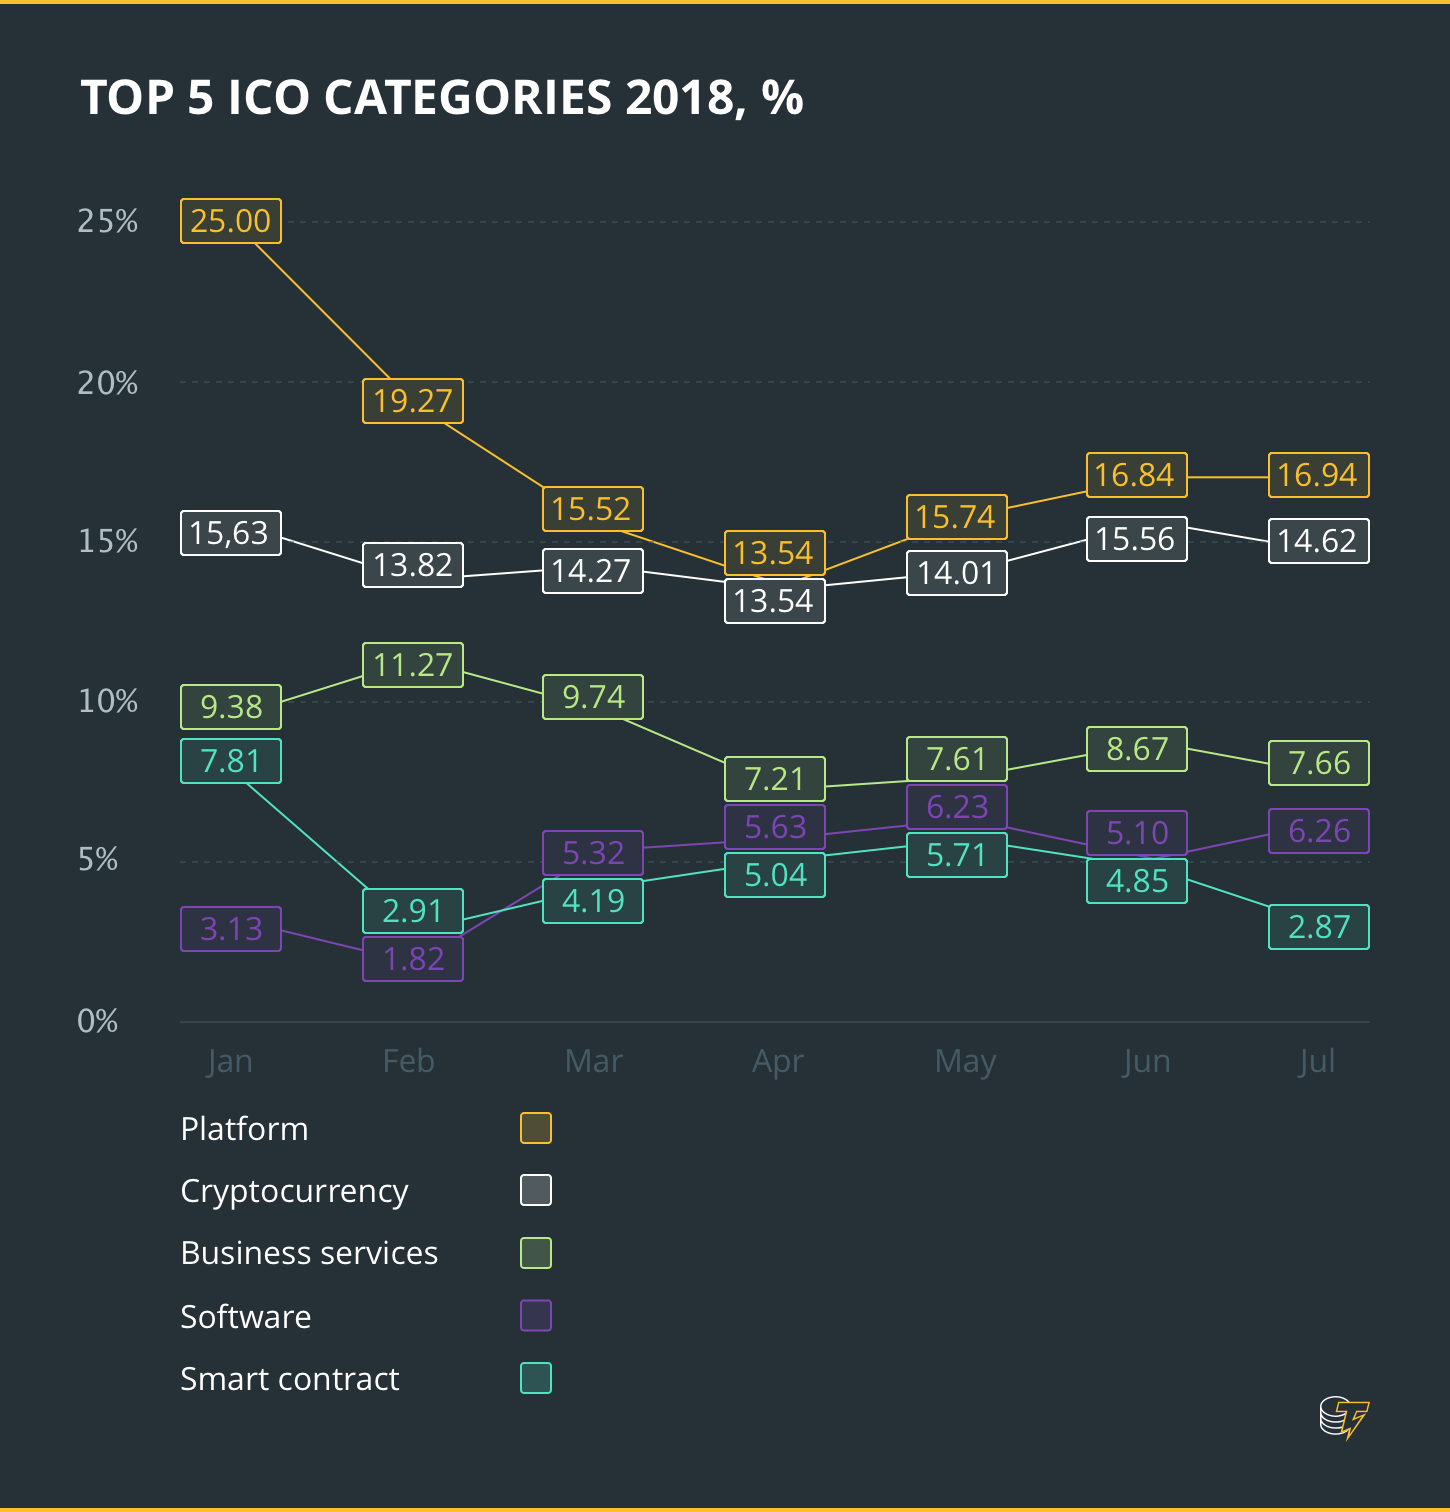 TOP ICO CATEGORIES